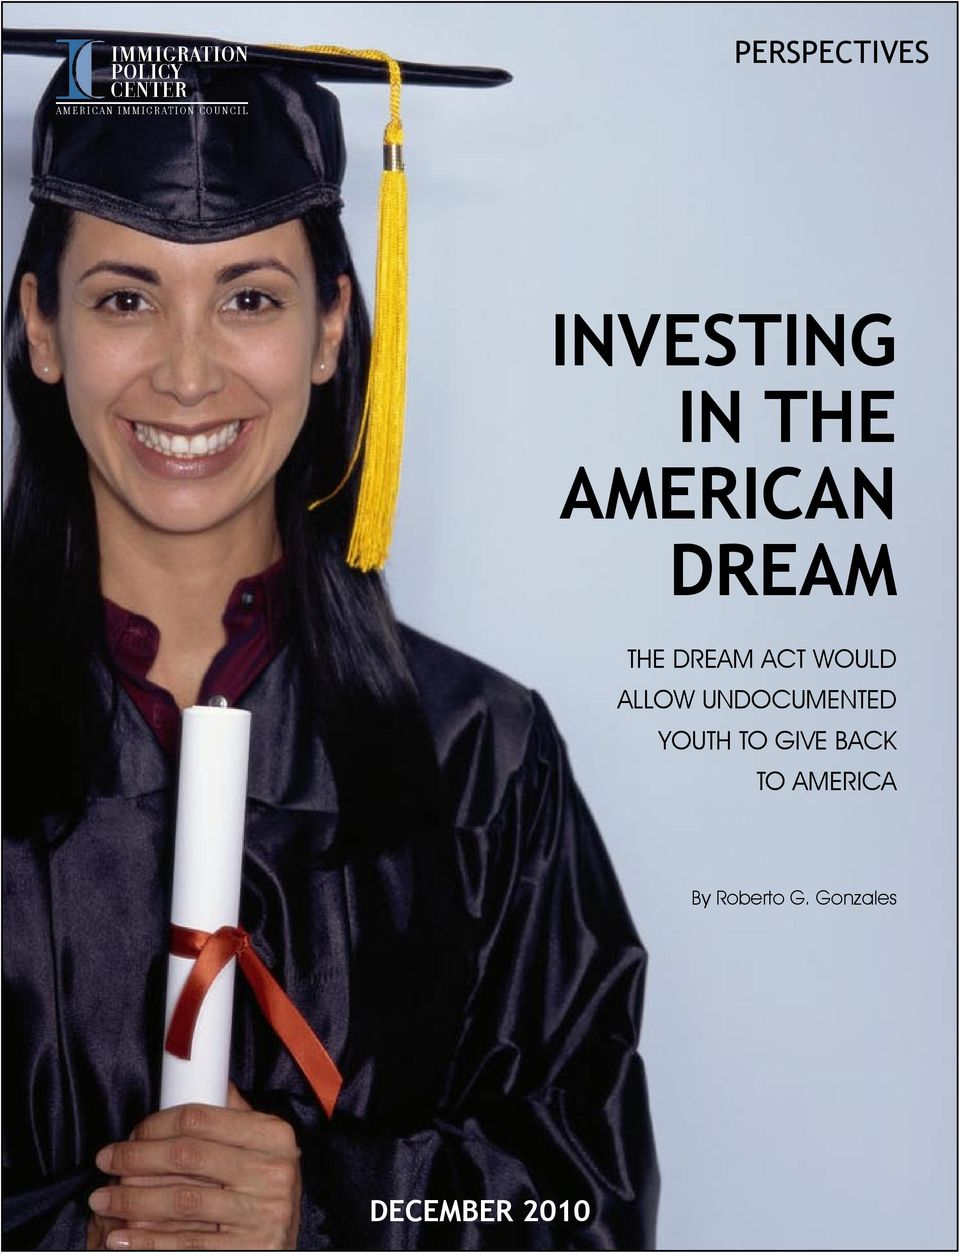 AMERICAN DREAM THE DREAM ACT WOULD ALLOW UNDOCUMENTED